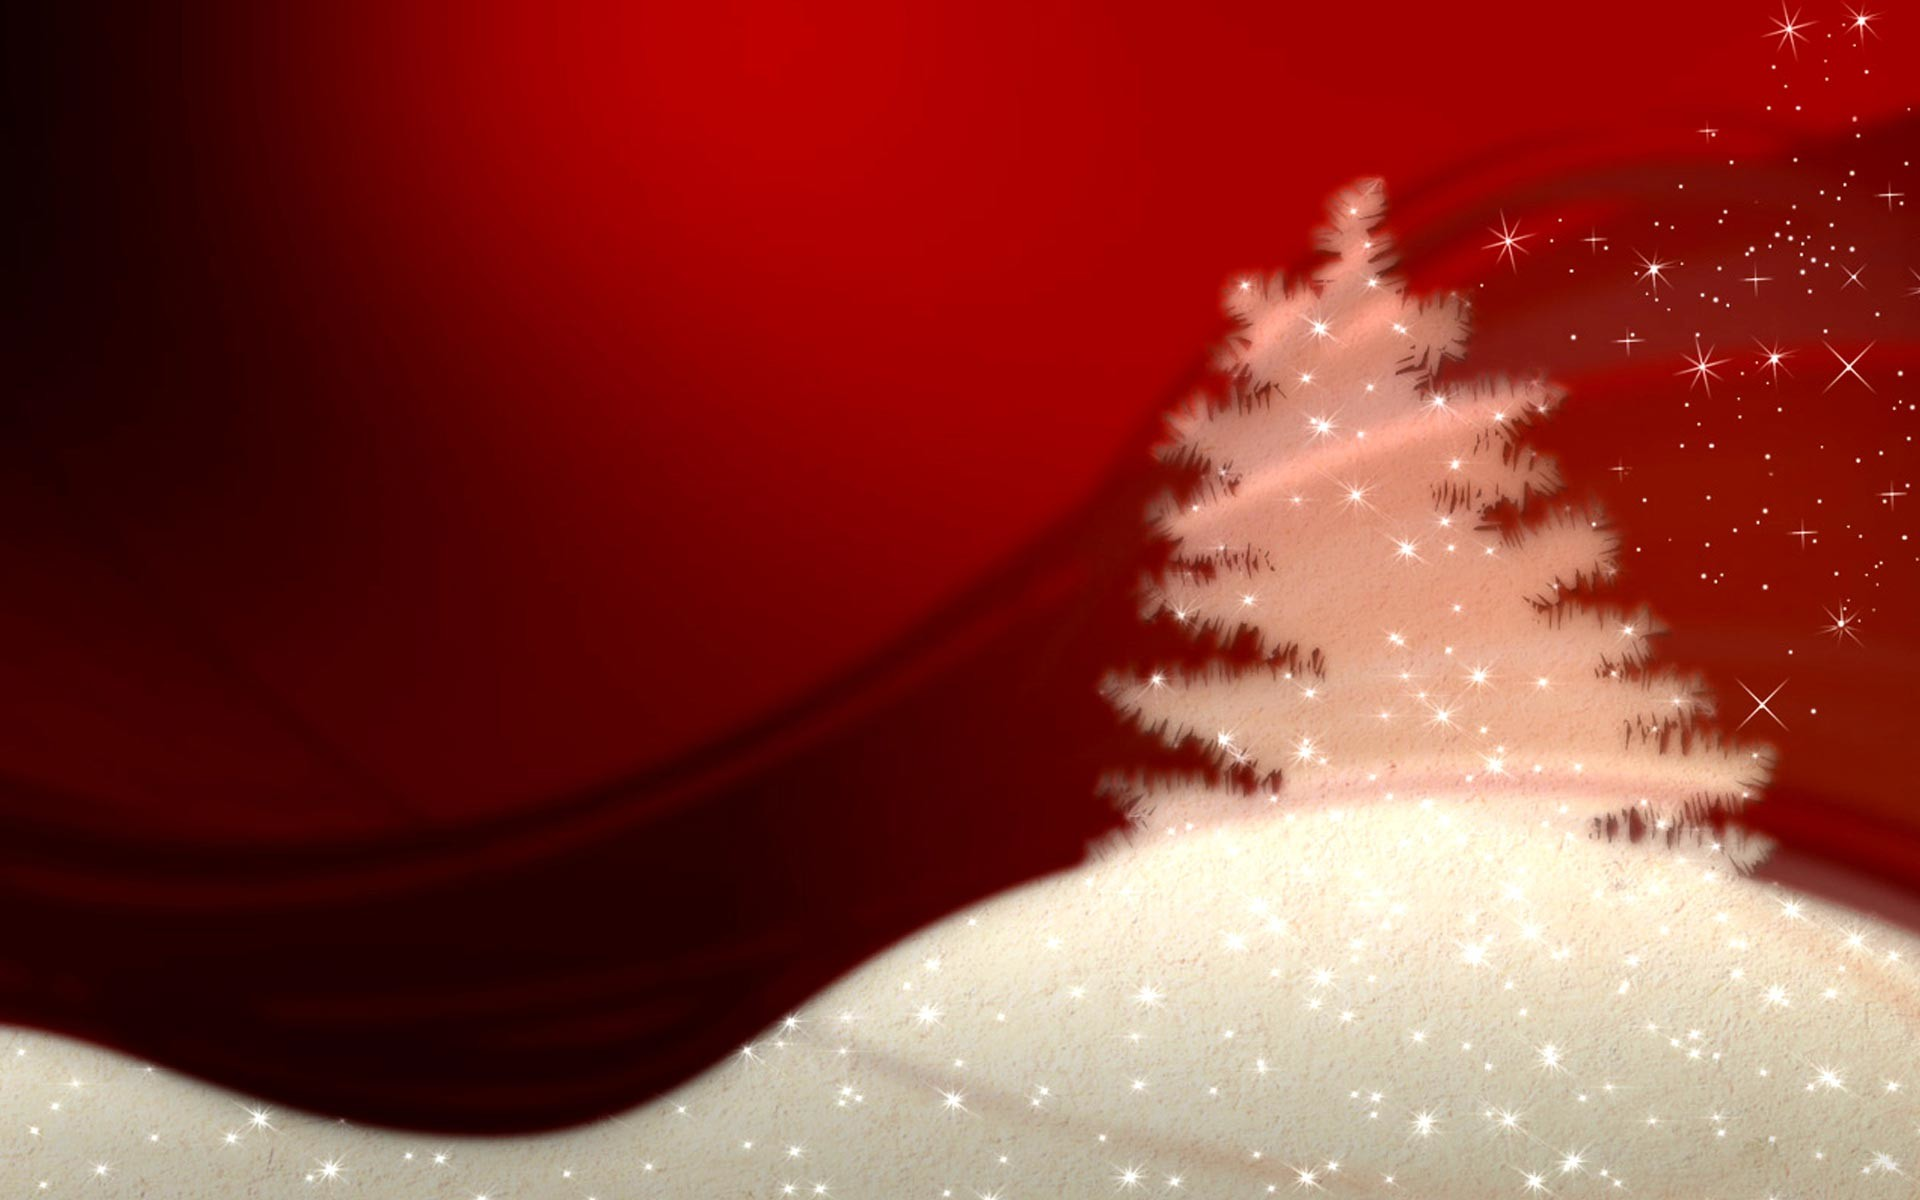 1920x1200 Best Merry Christmas Desktop Background for PC laptop Mac Happy